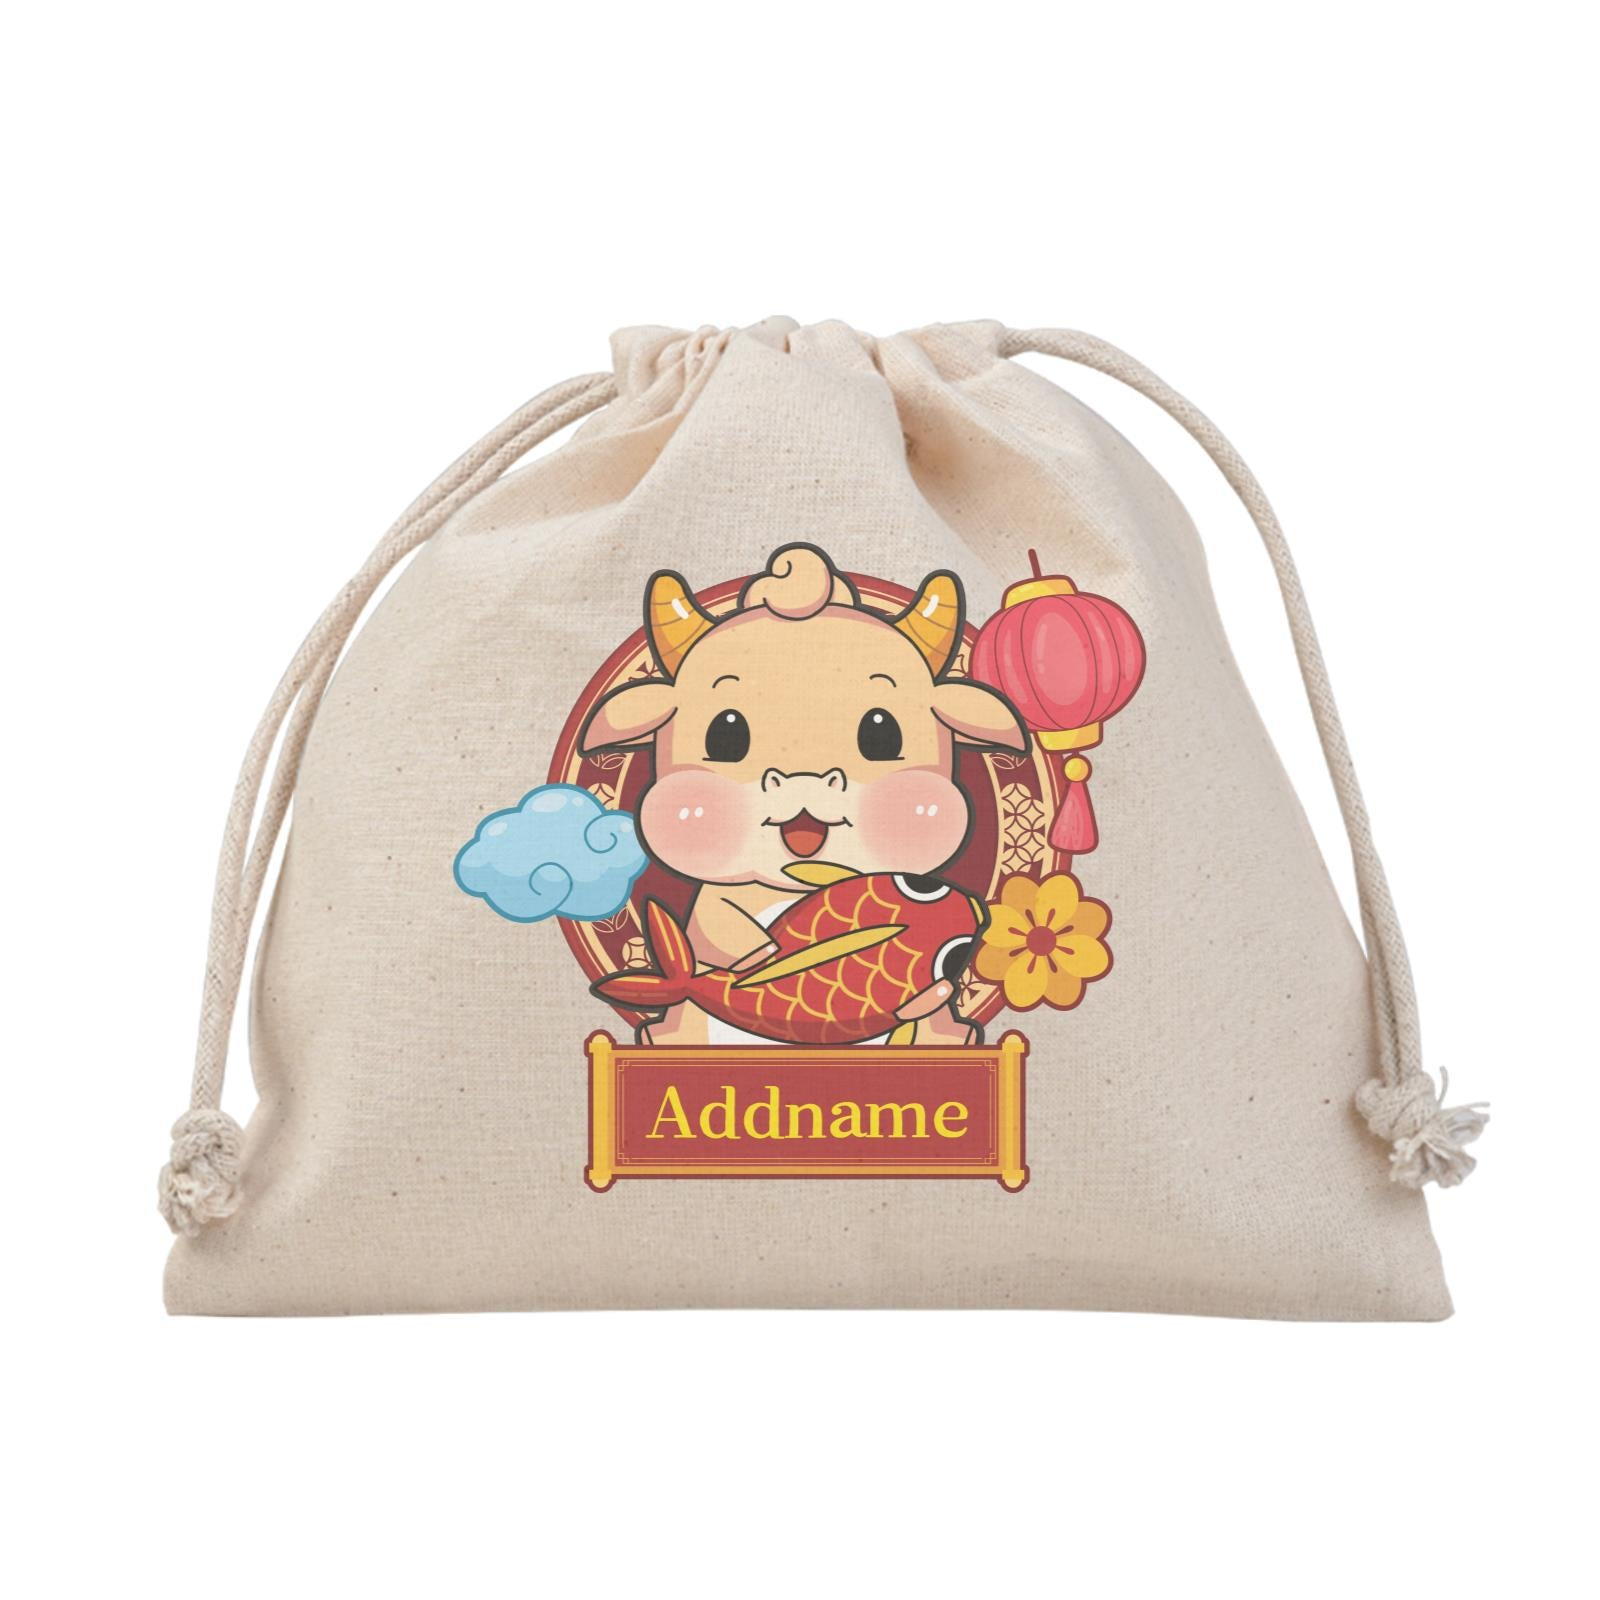 [CNY 2021] Golden Cow with Koi Fish Satchel